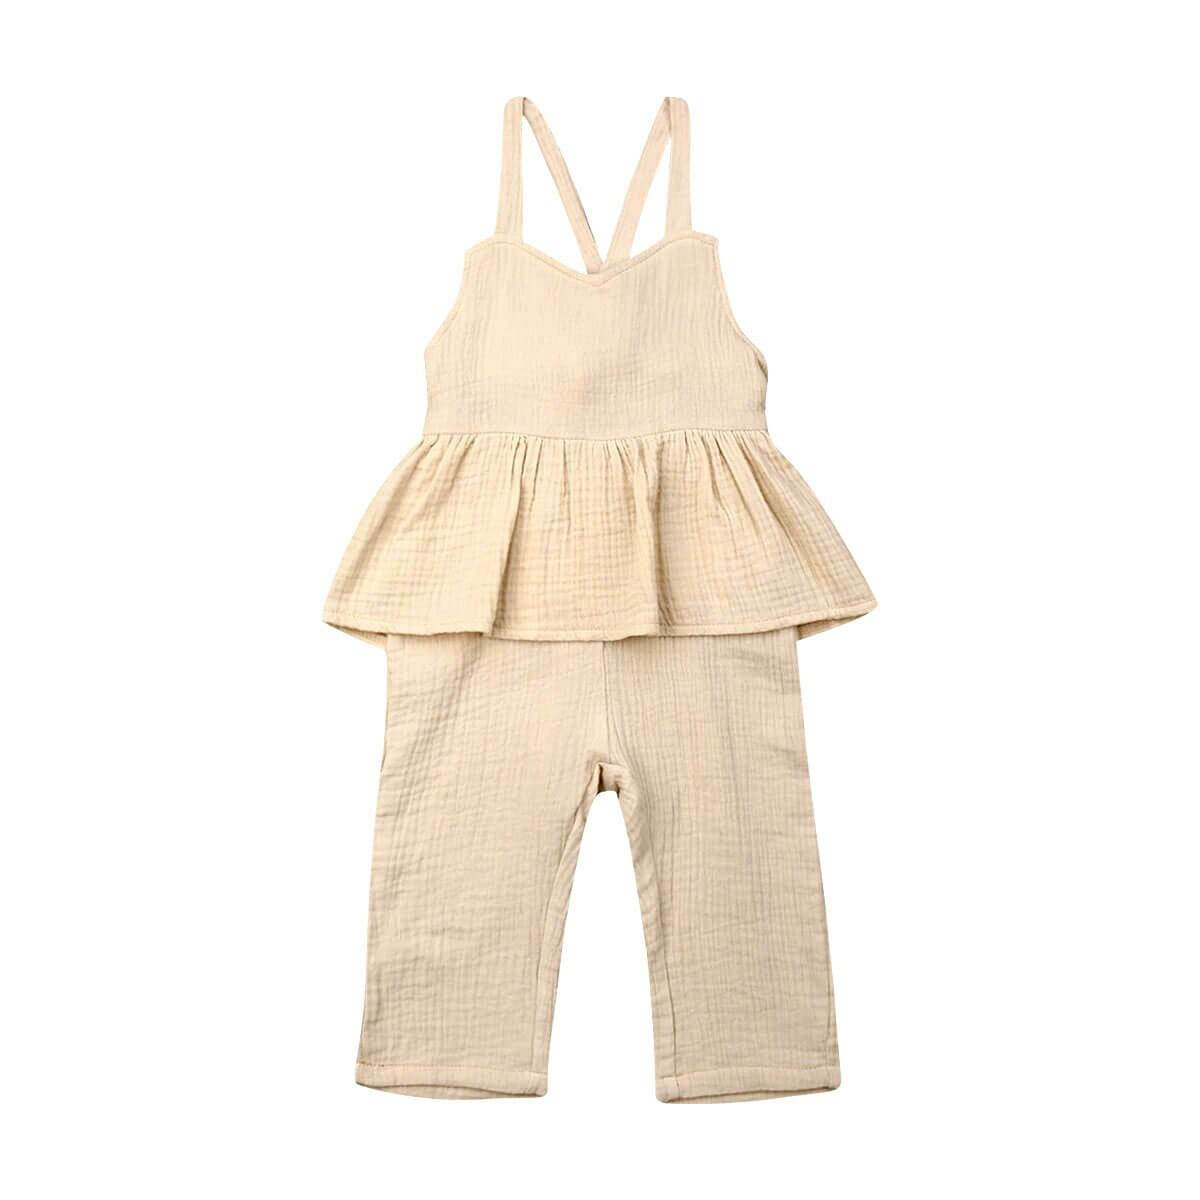 Linen Ruffled Solid Jumpsuit - The Trendy Toddlers